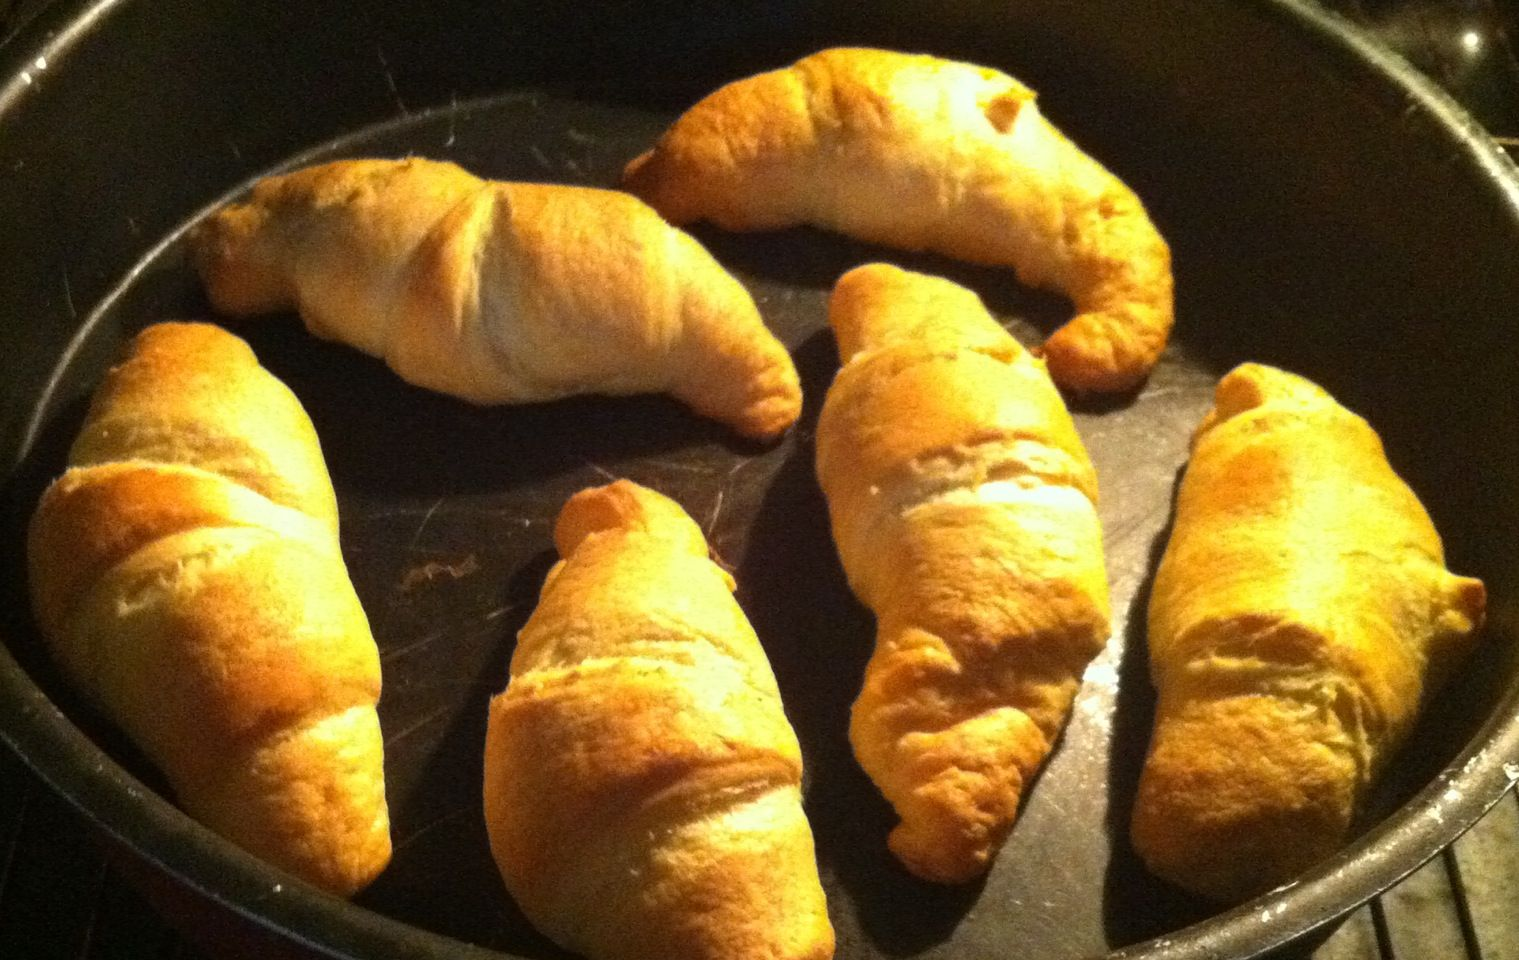 My croissants with chocolate